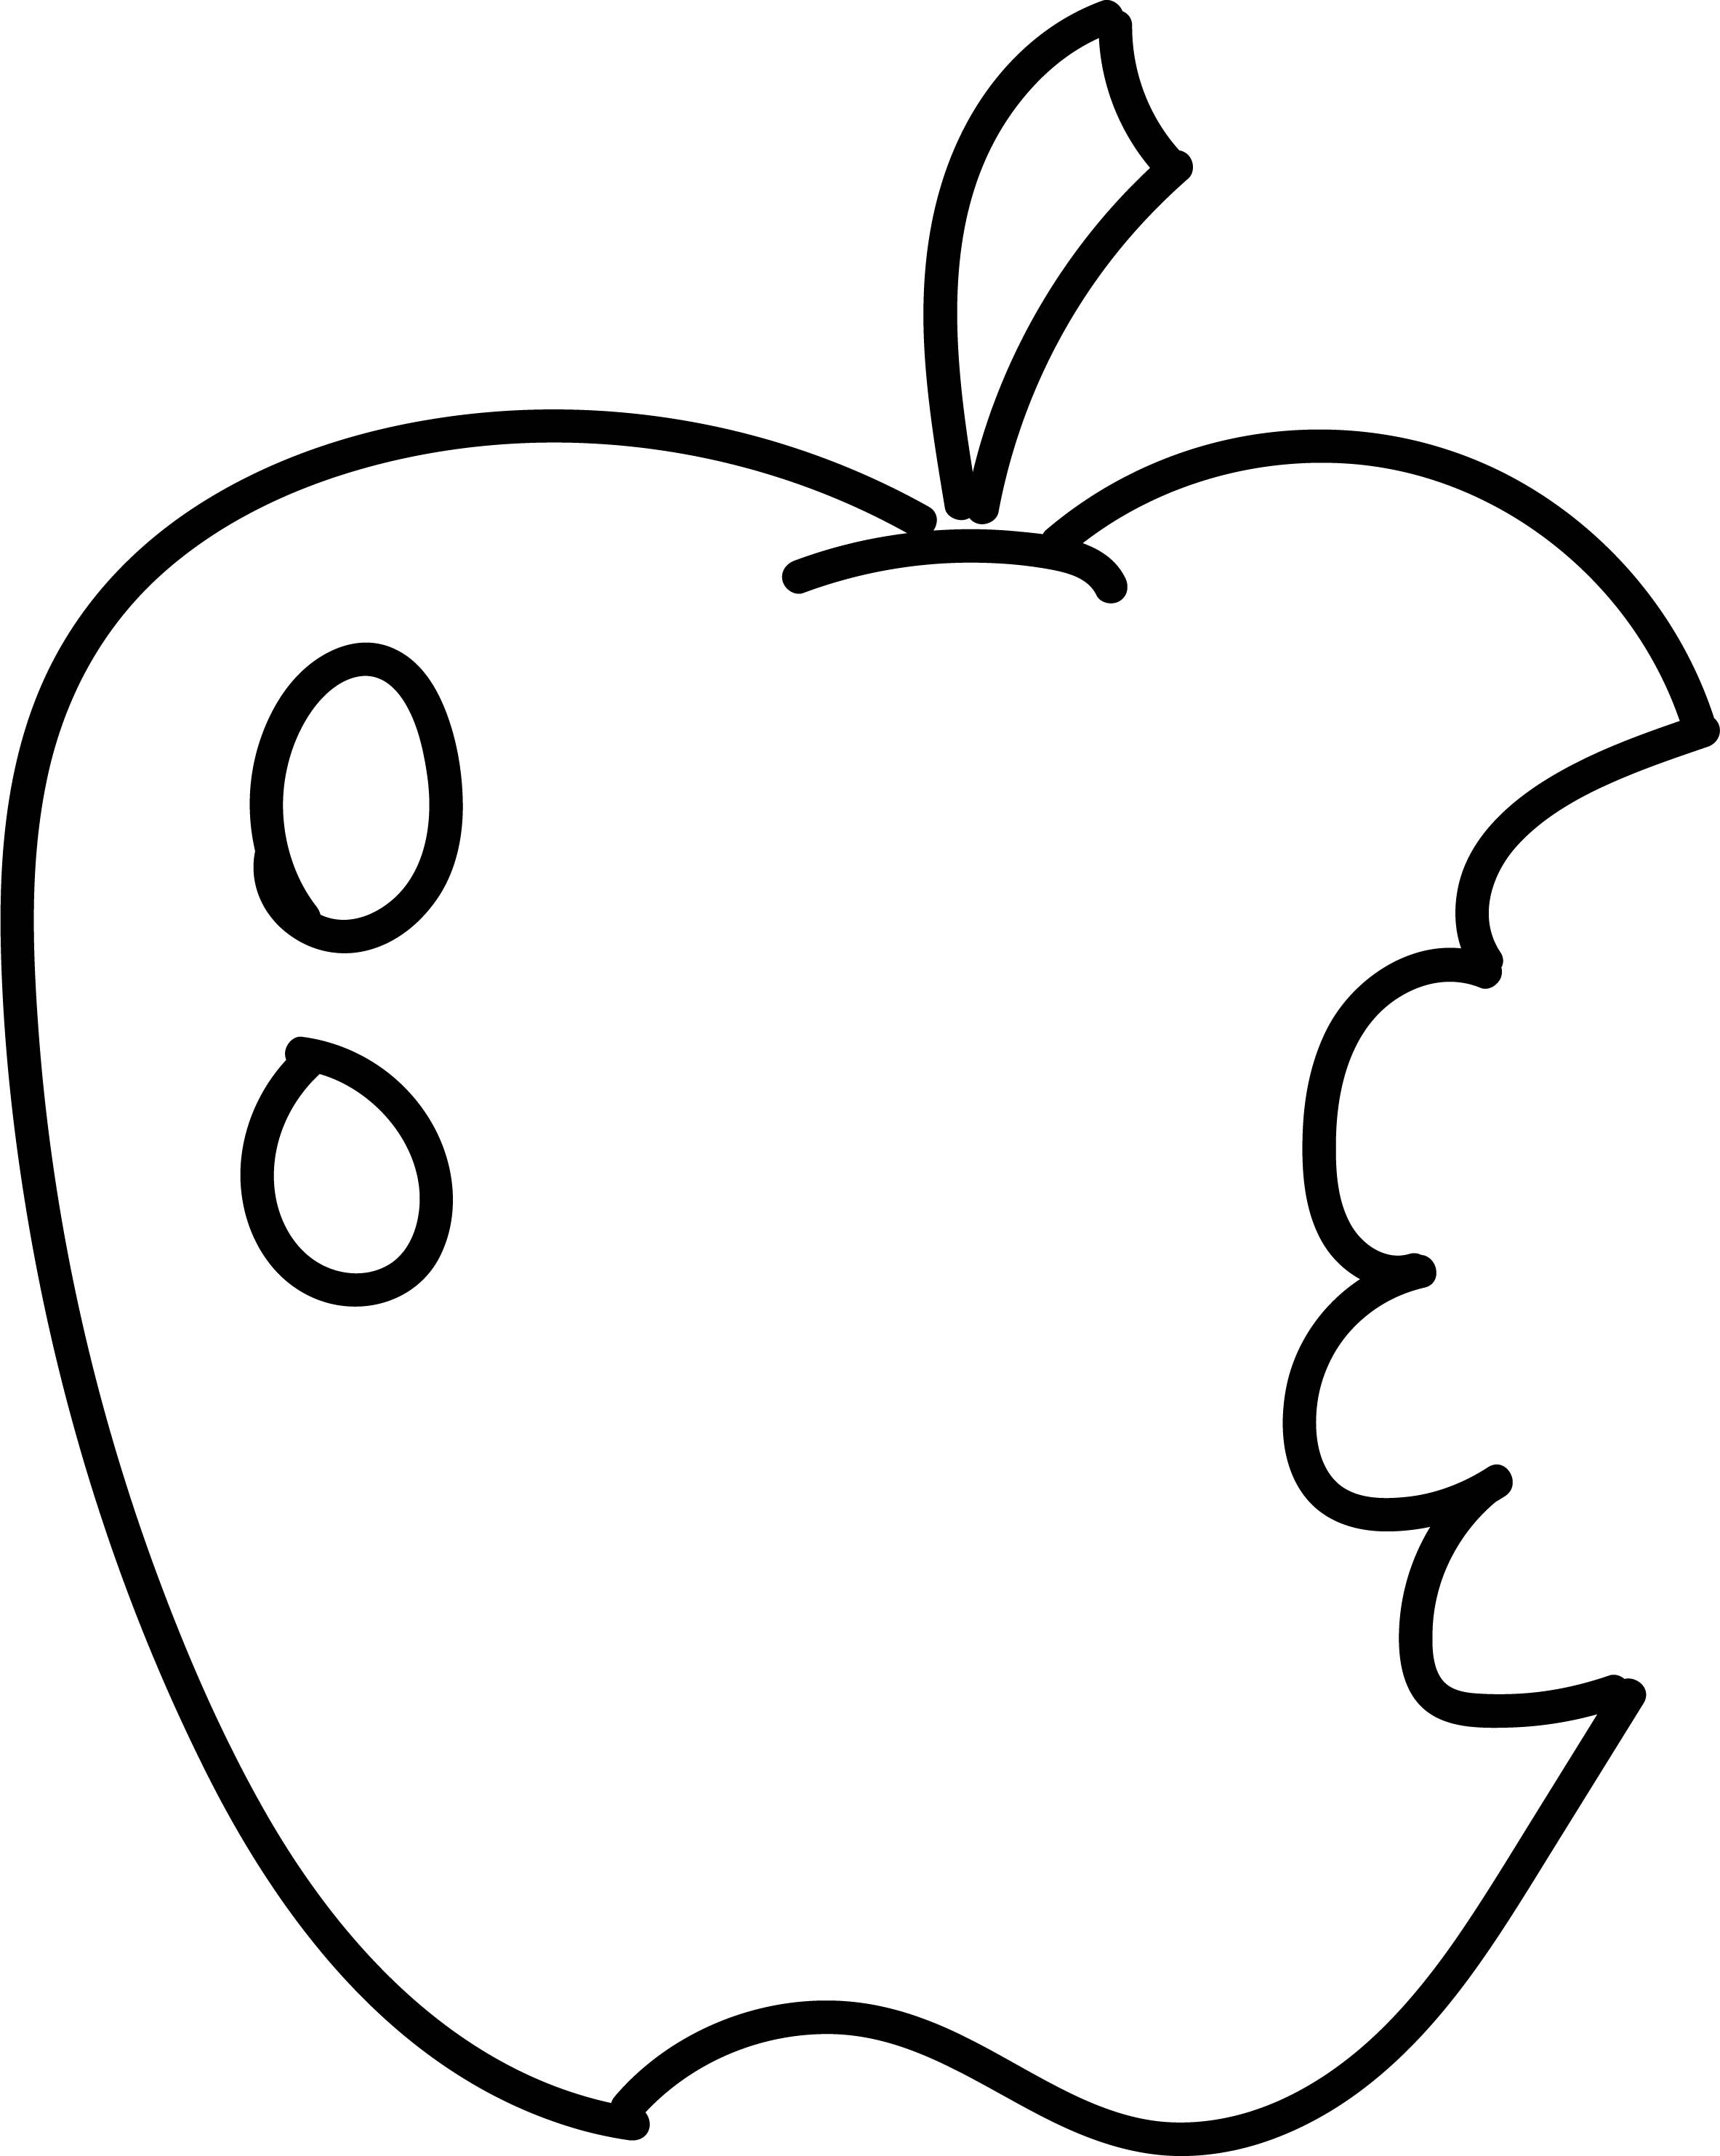 apple pictures to color manzana verde drawing apple coloring book fruit apple png pictures apple color to